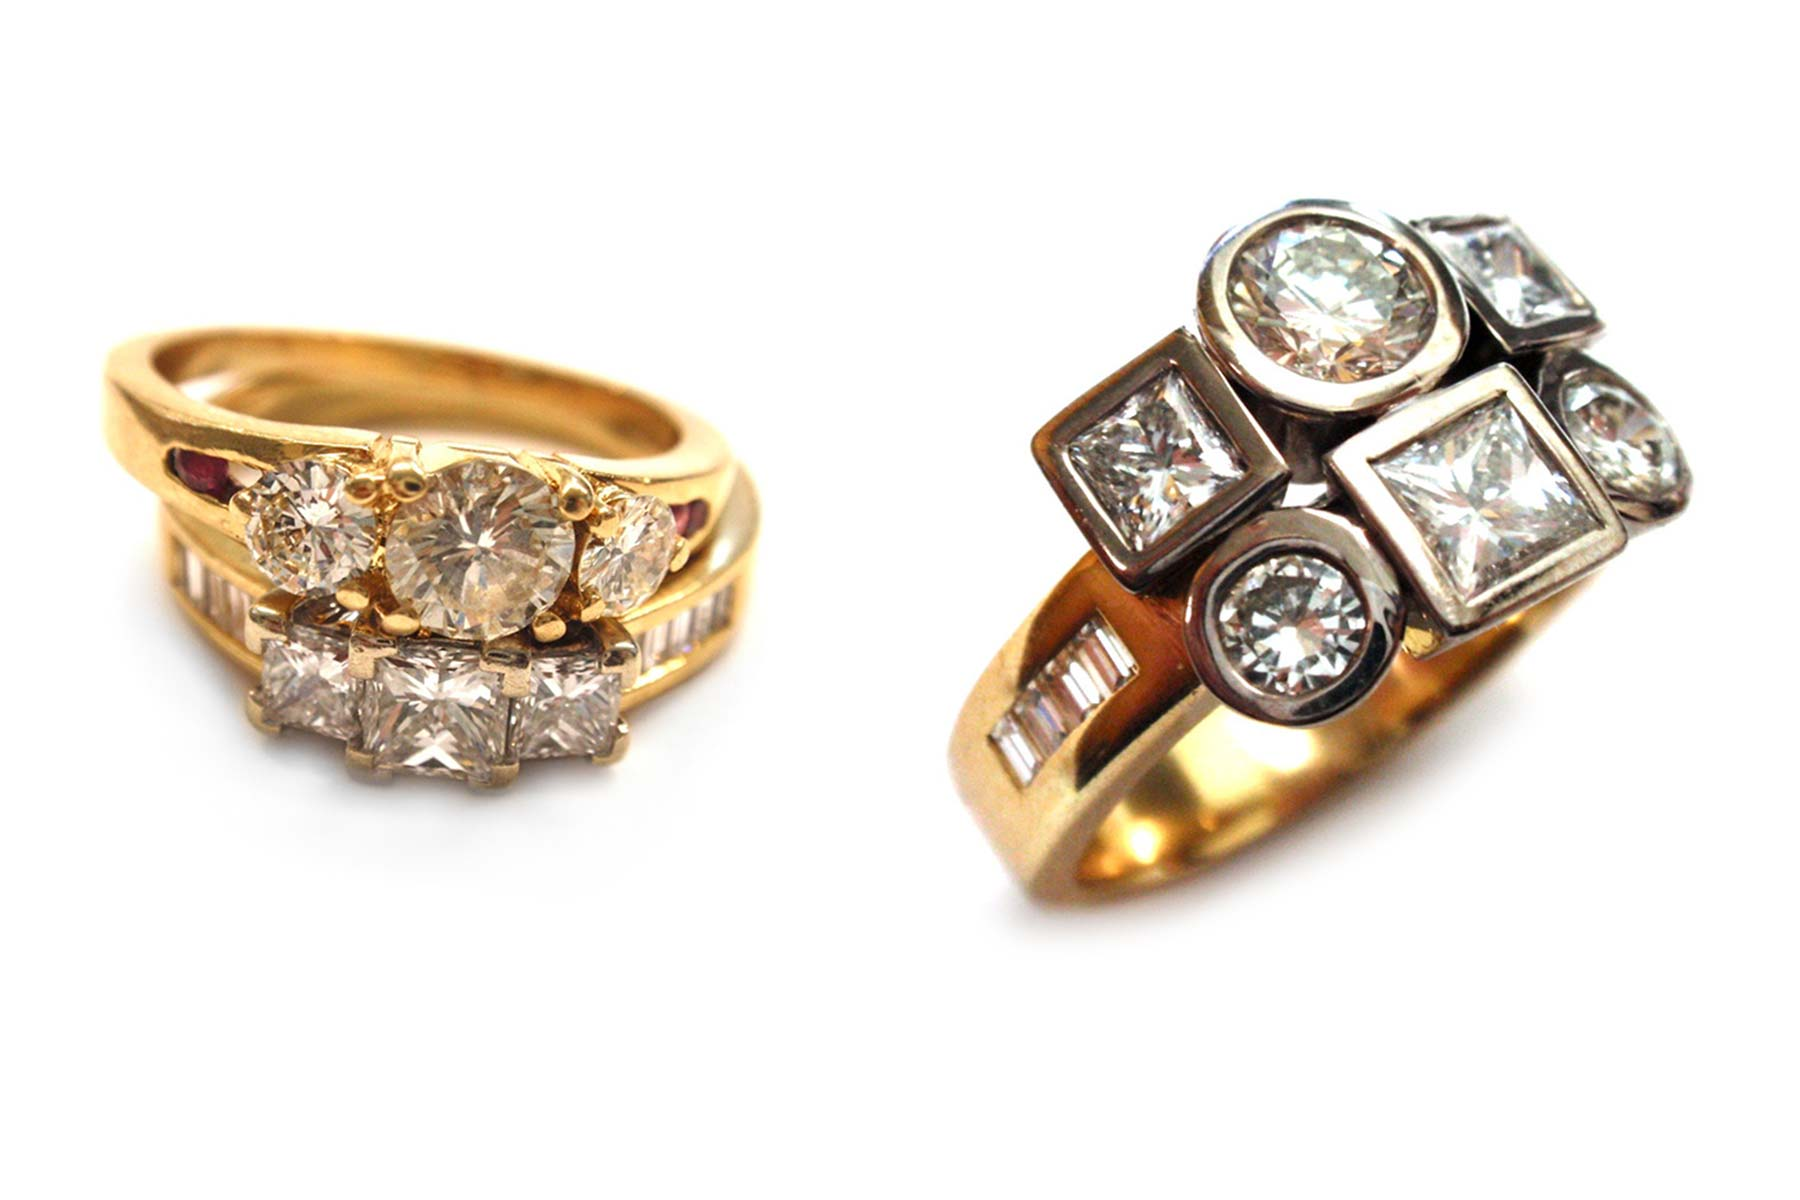 Creating a fresh look for rings that are usually worn together. Alternating the shapes and bezel setting the stones gives the look more of an impact